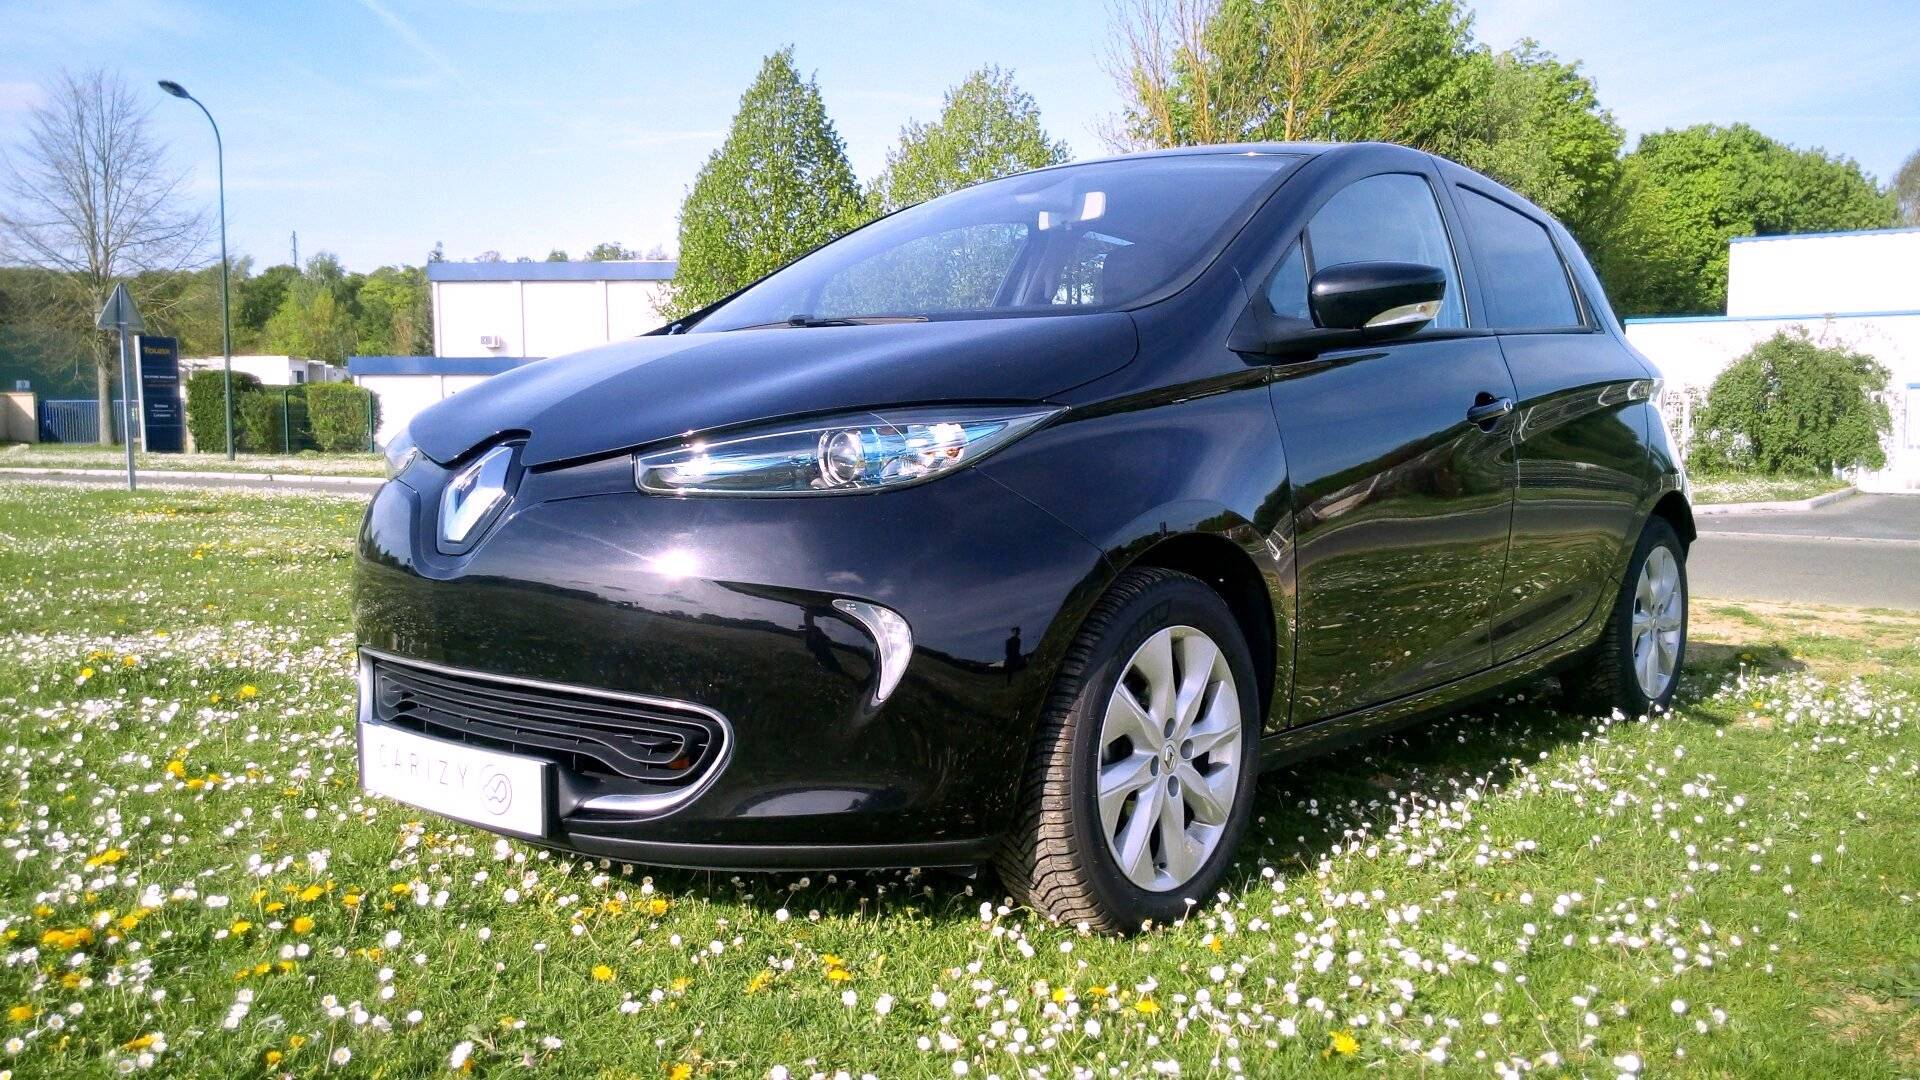 renault zoe d 39 occasion 90 intens bva amblainville carizy. Black Bedroom Furniture Sets. Home Design Ideas